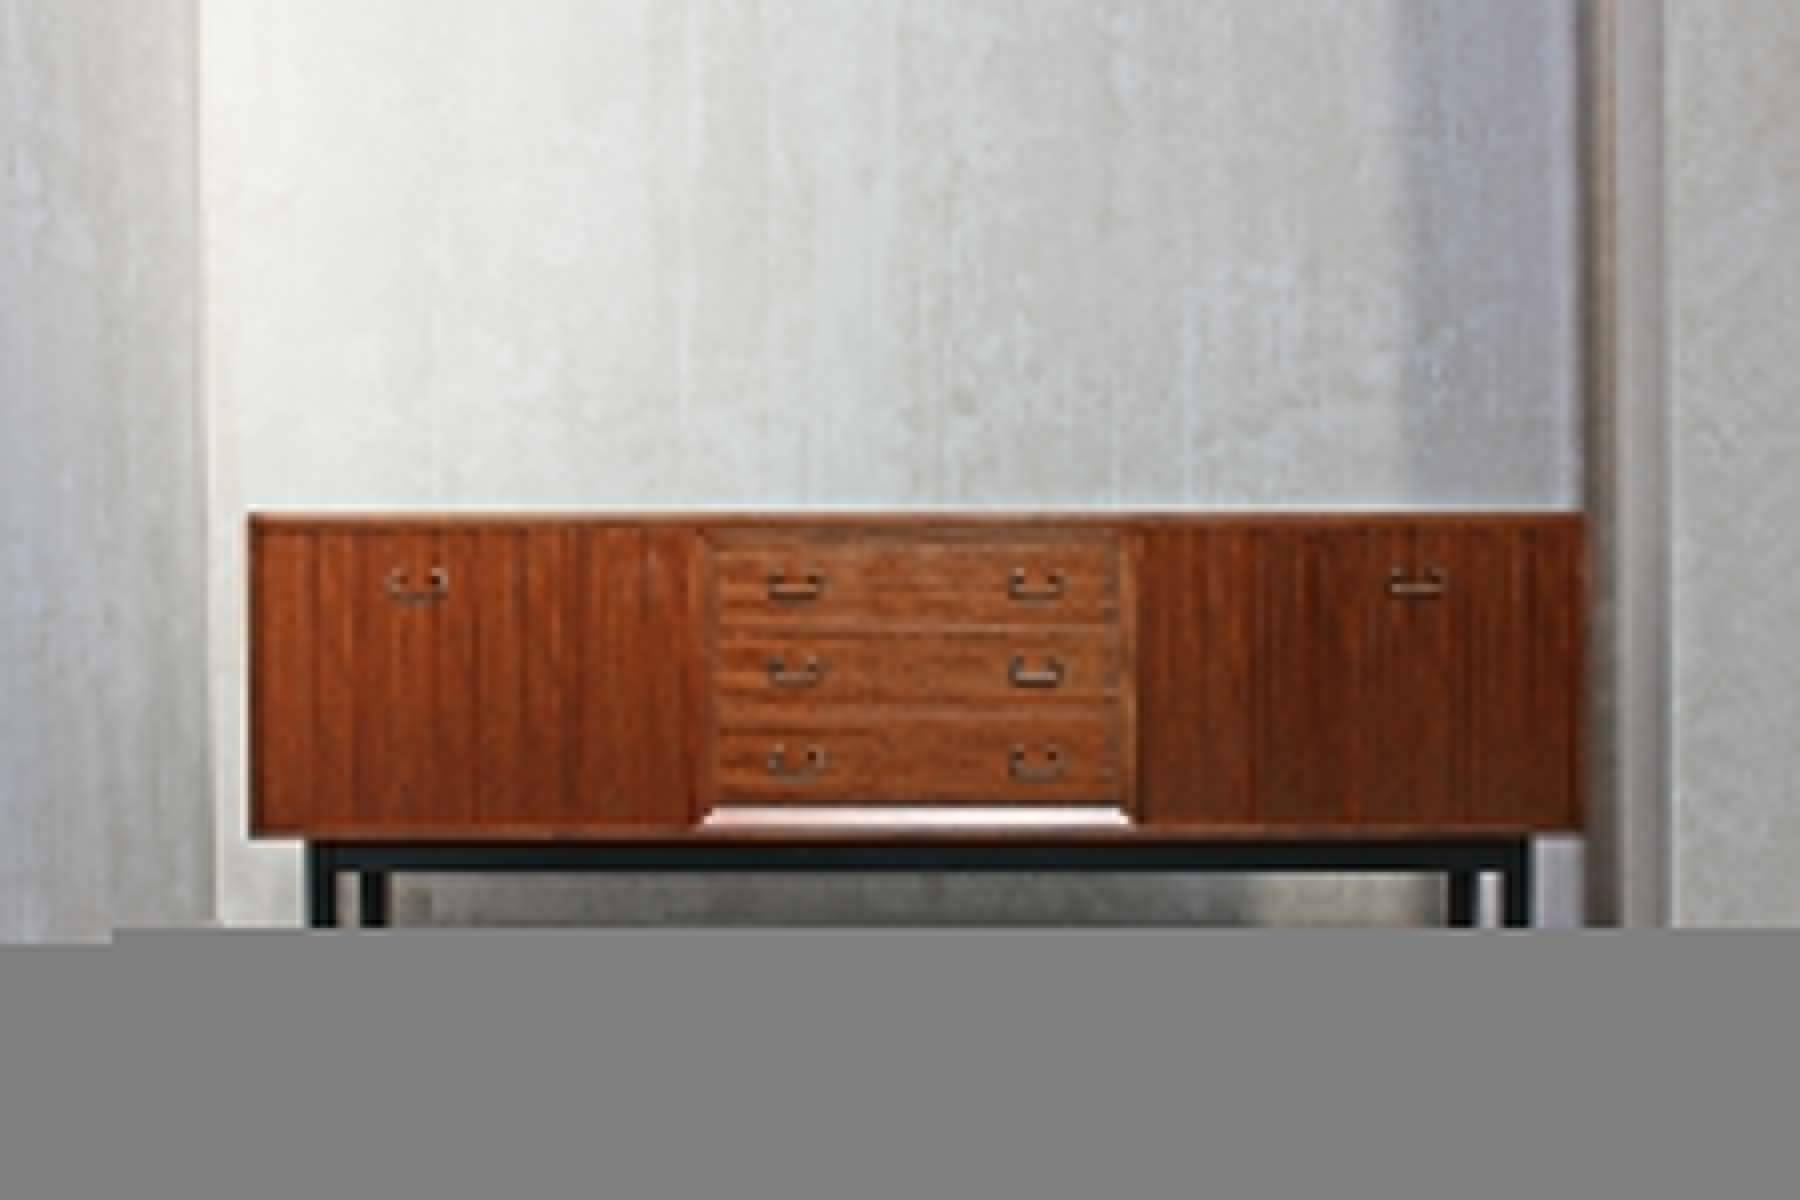 Vintage Sideboard From G Plan, 1950S For Sale At Pamono In Most Up To Date G Plan Vintage Sideboards (#10 of 15)